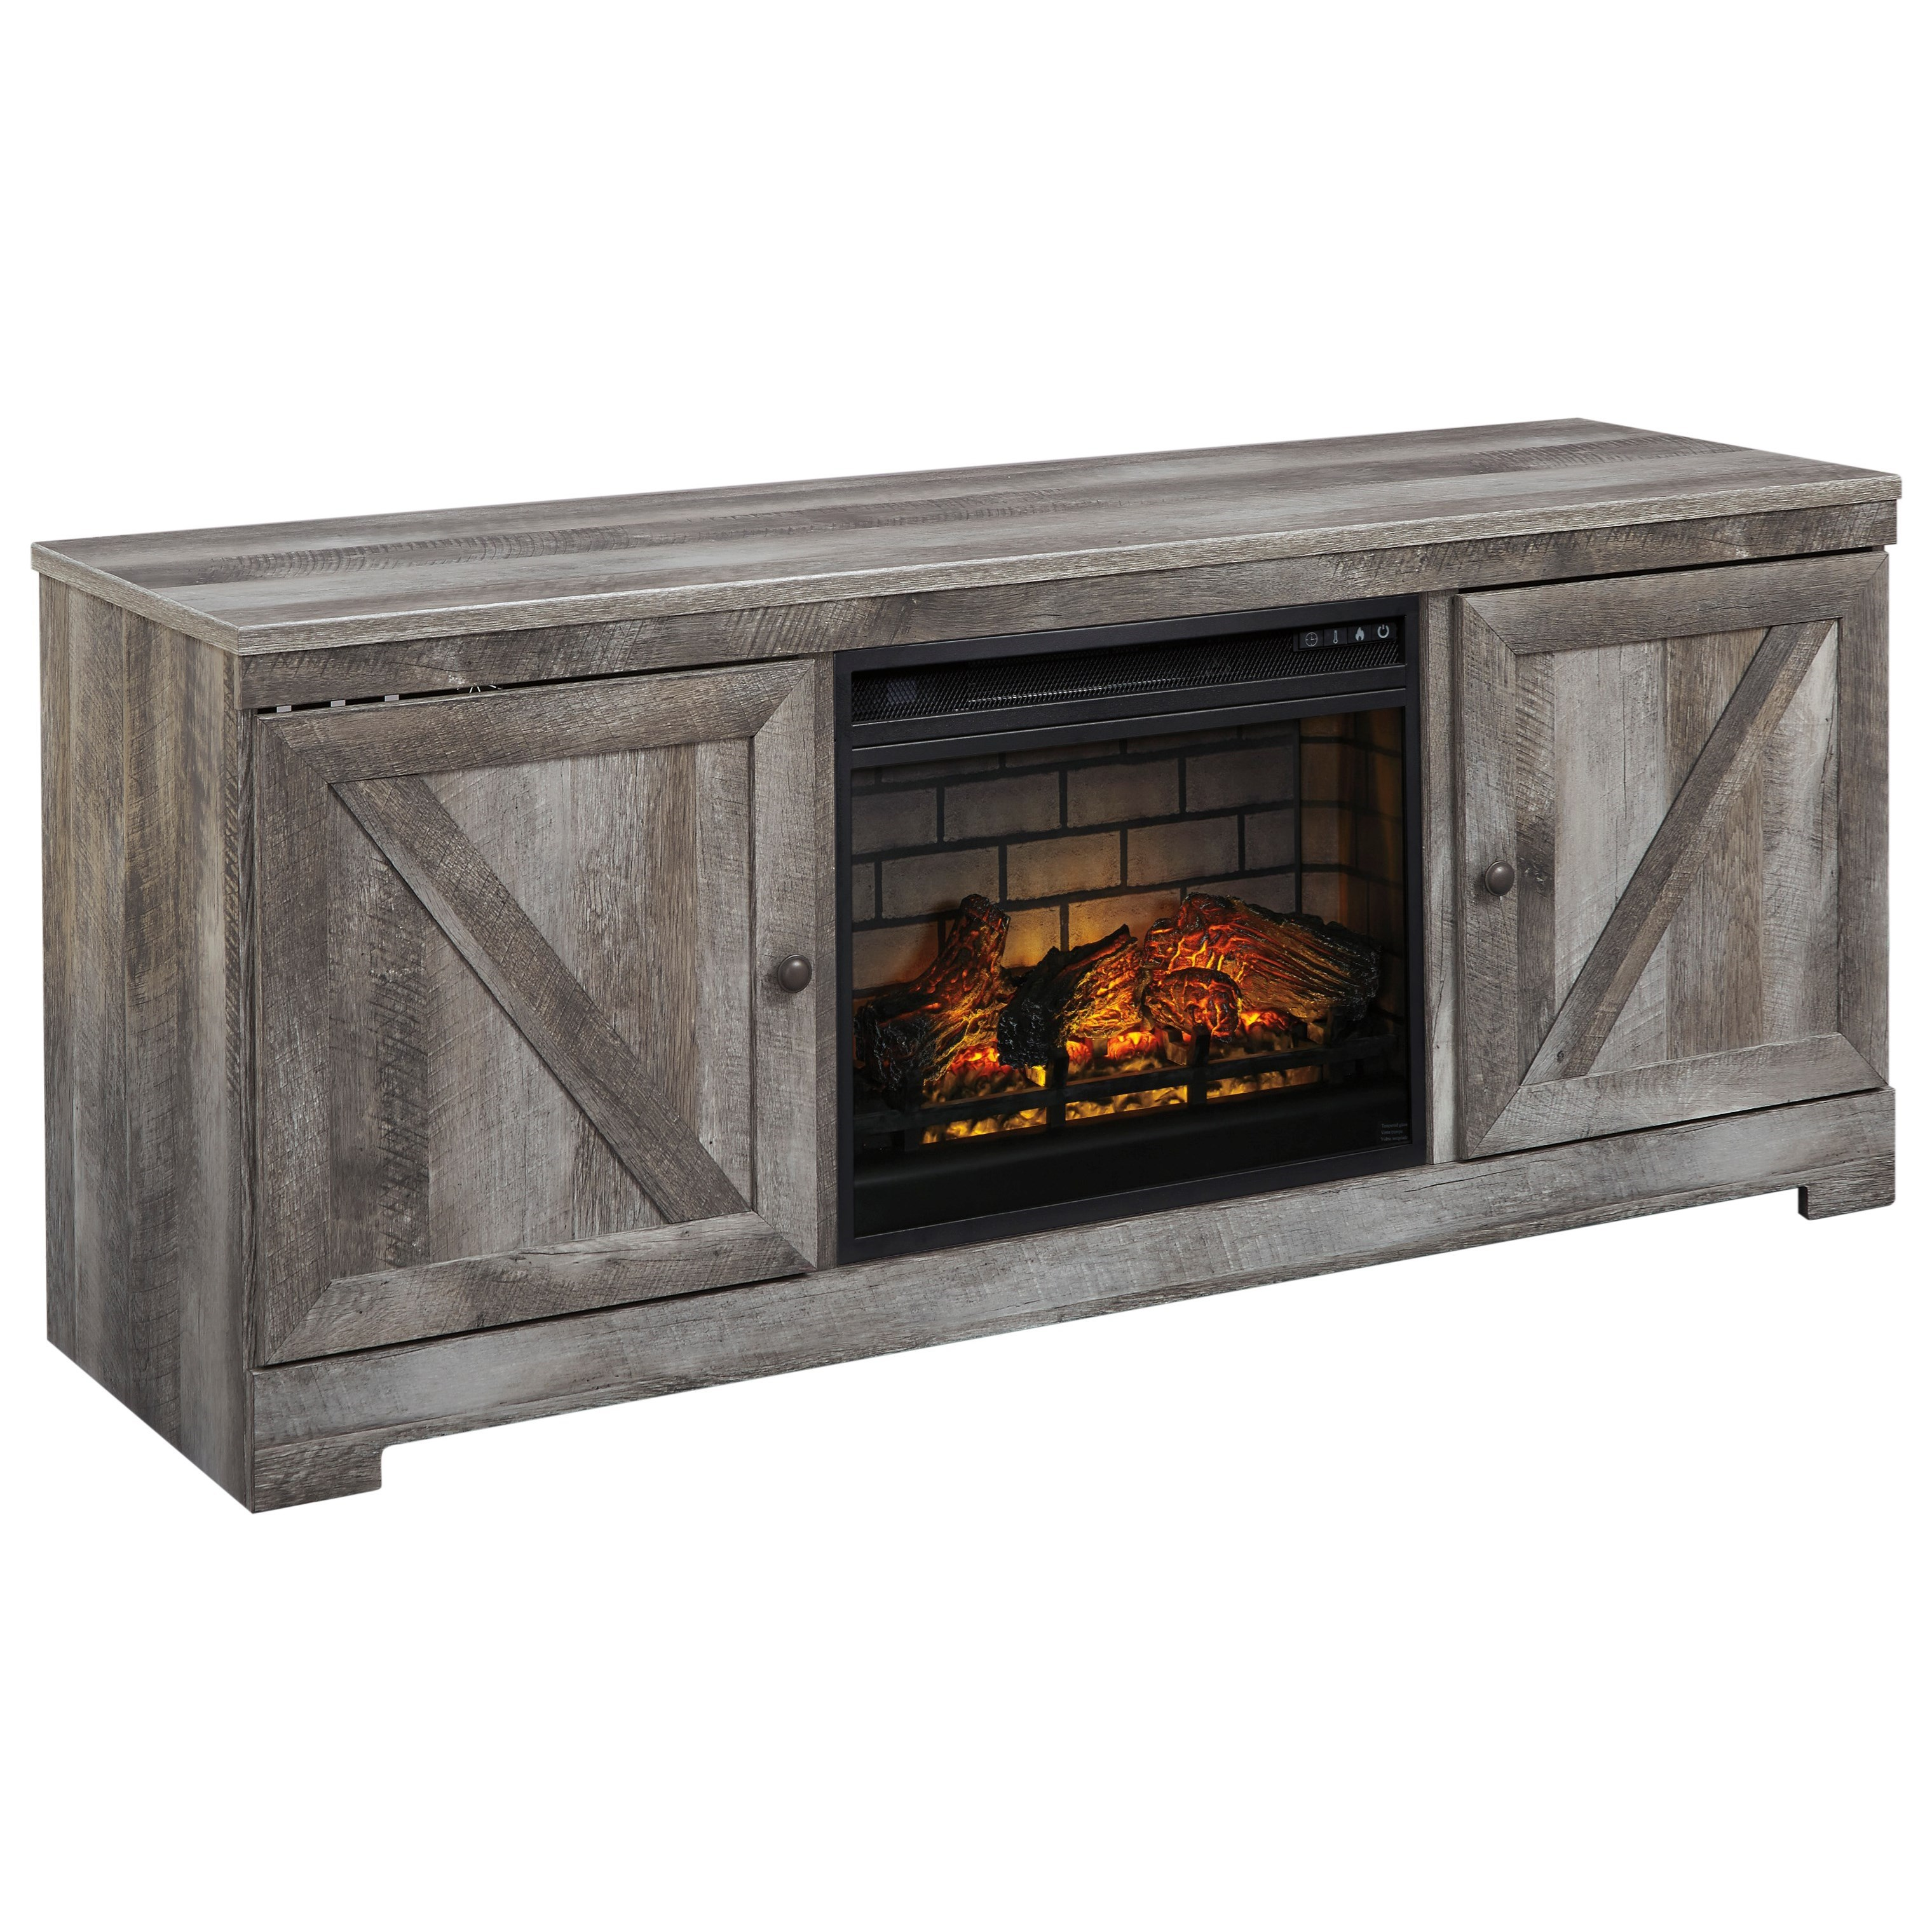 Wynnlow Large TV Stand with Fireplace by Signature Design by Ashley at Northeast Factory Direct